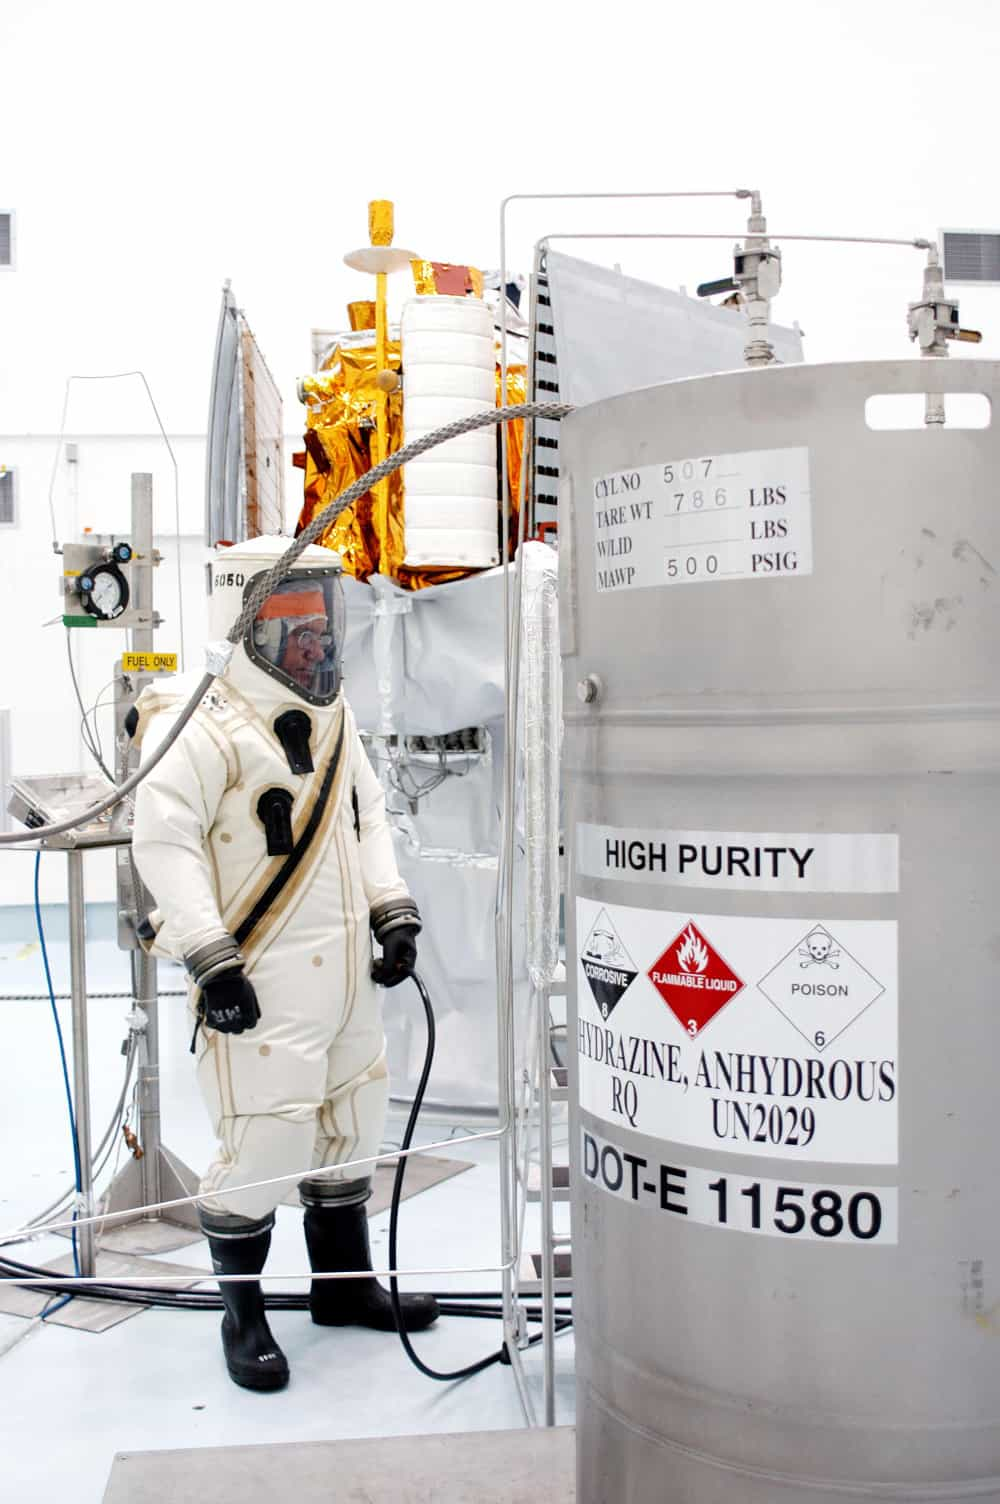 The hypergolic fuel hydrazine being loaded onto the MESSENGER space probe. Note the safety suit the technician is wearing.